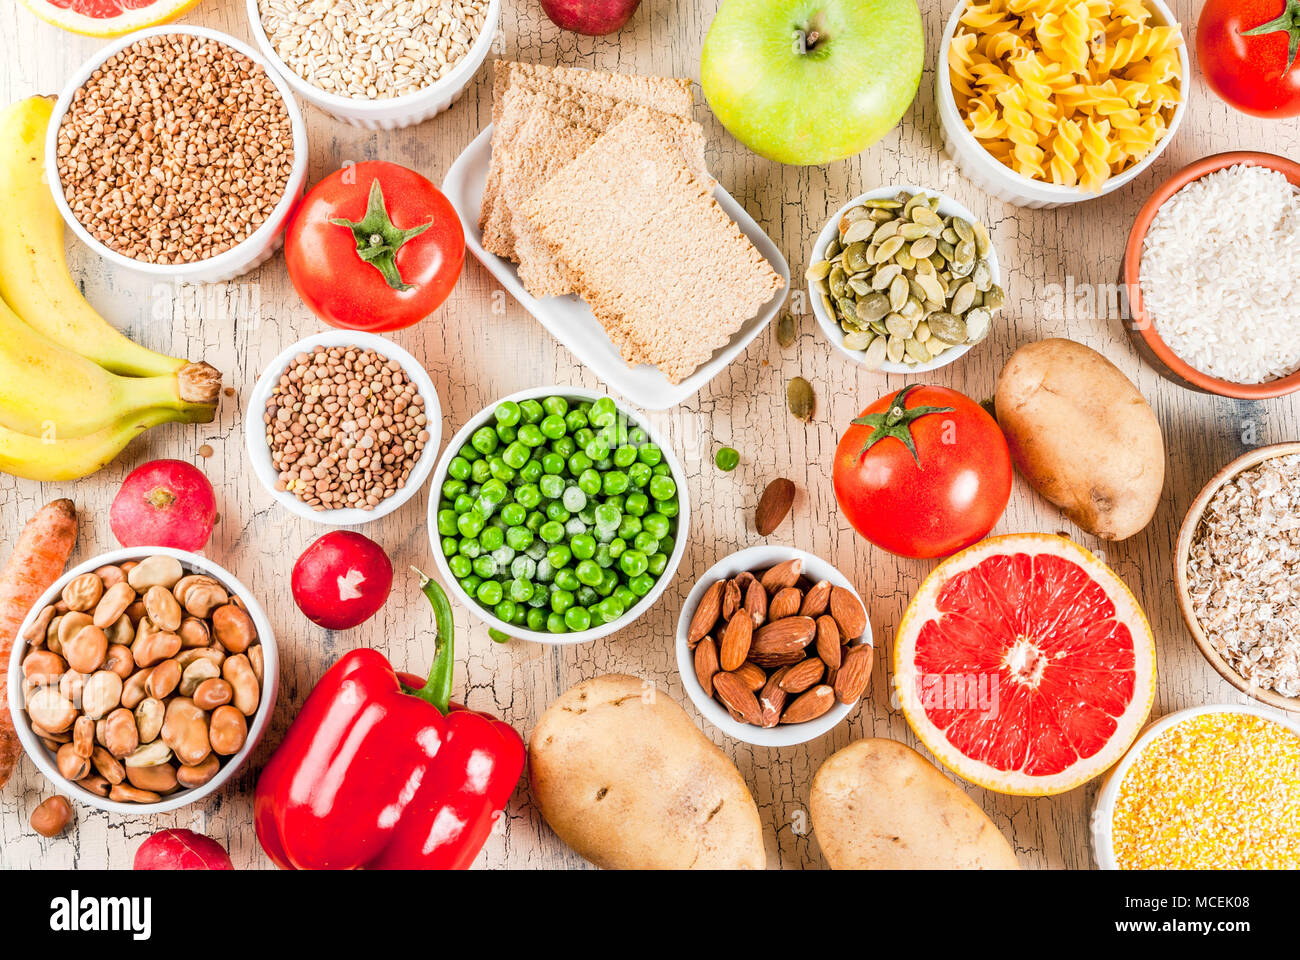 Diet food background concept, healthy carbohydrates (carbs) products - fruits, vegetables, cereals, nuts, beans, light concrete background above - Stock Image